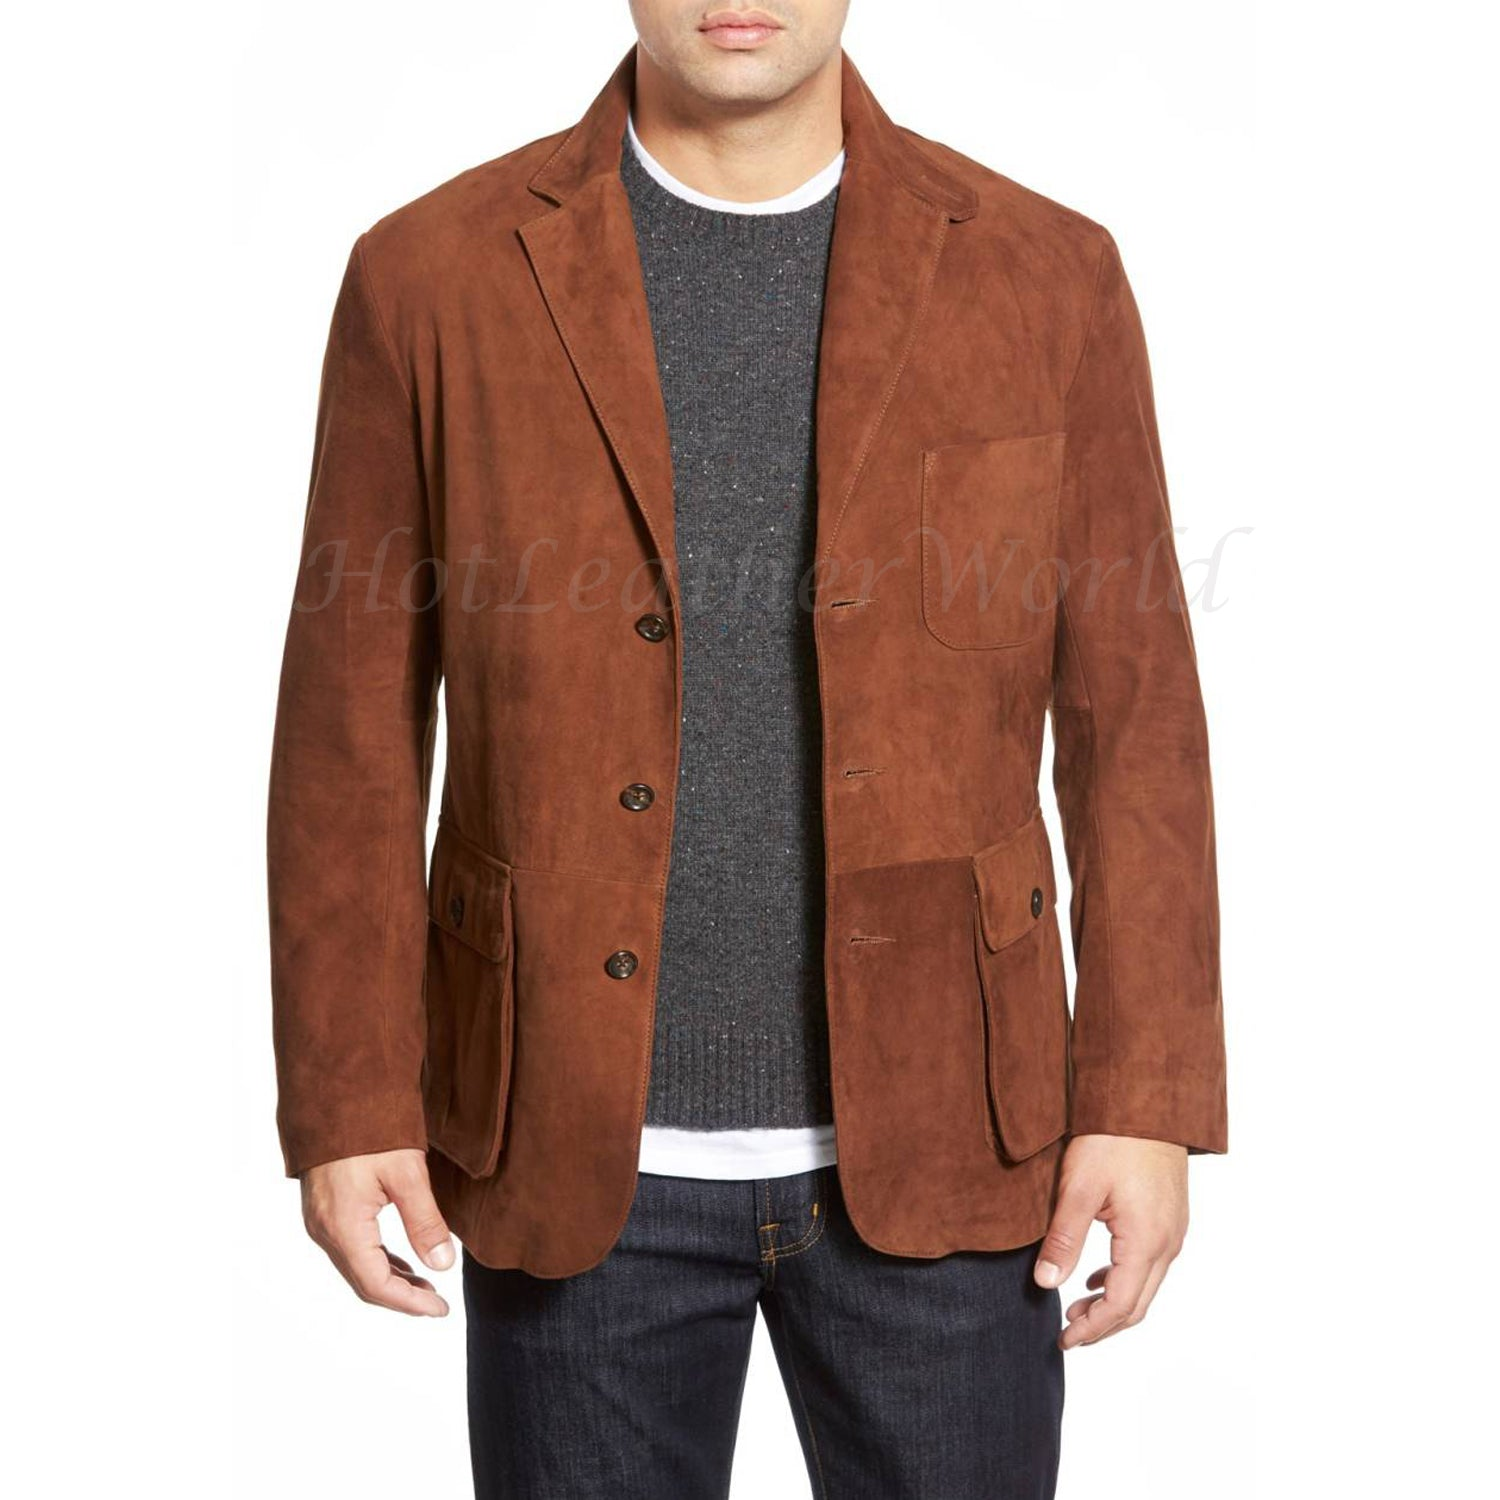 Suede Leather Blazer For Men -  HOTLEATHERWORLD